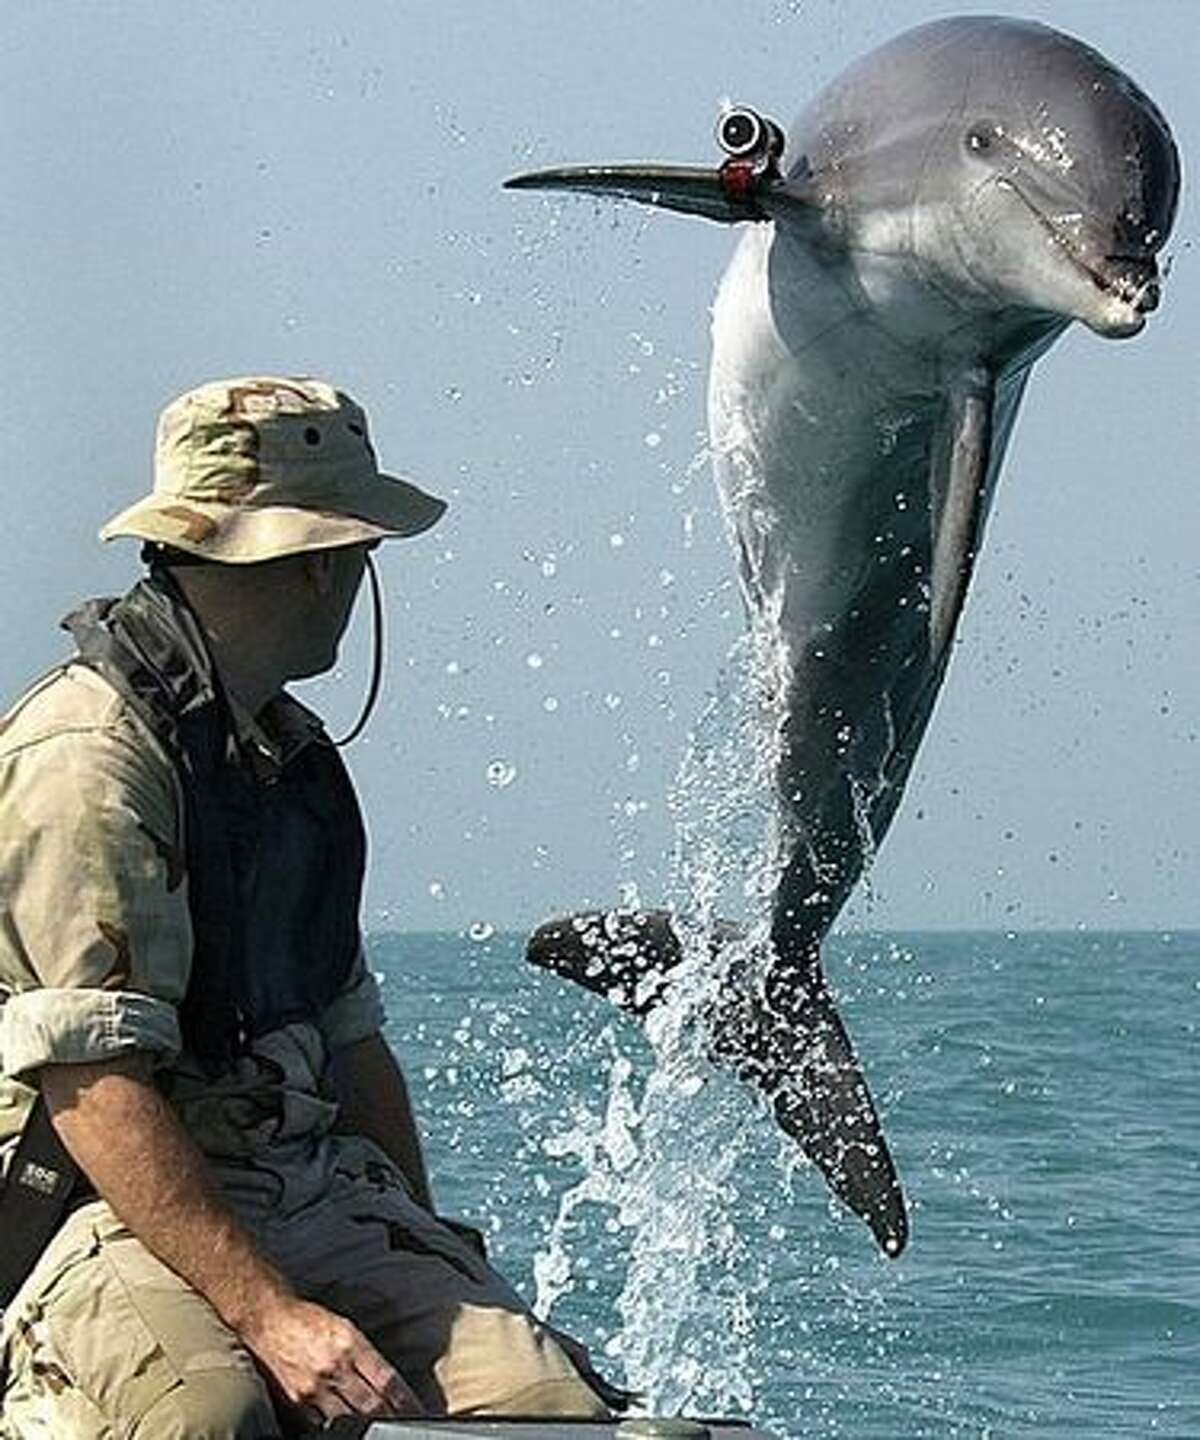 Kahili, a mine-hunting dolphin with a tracking device on its fin, leaps near a U.S. Navy handler in Iraq in 2003. The dolphin was one of several sent to clear the Umm Qasr harbor of mines. Photo by U.S. Navy